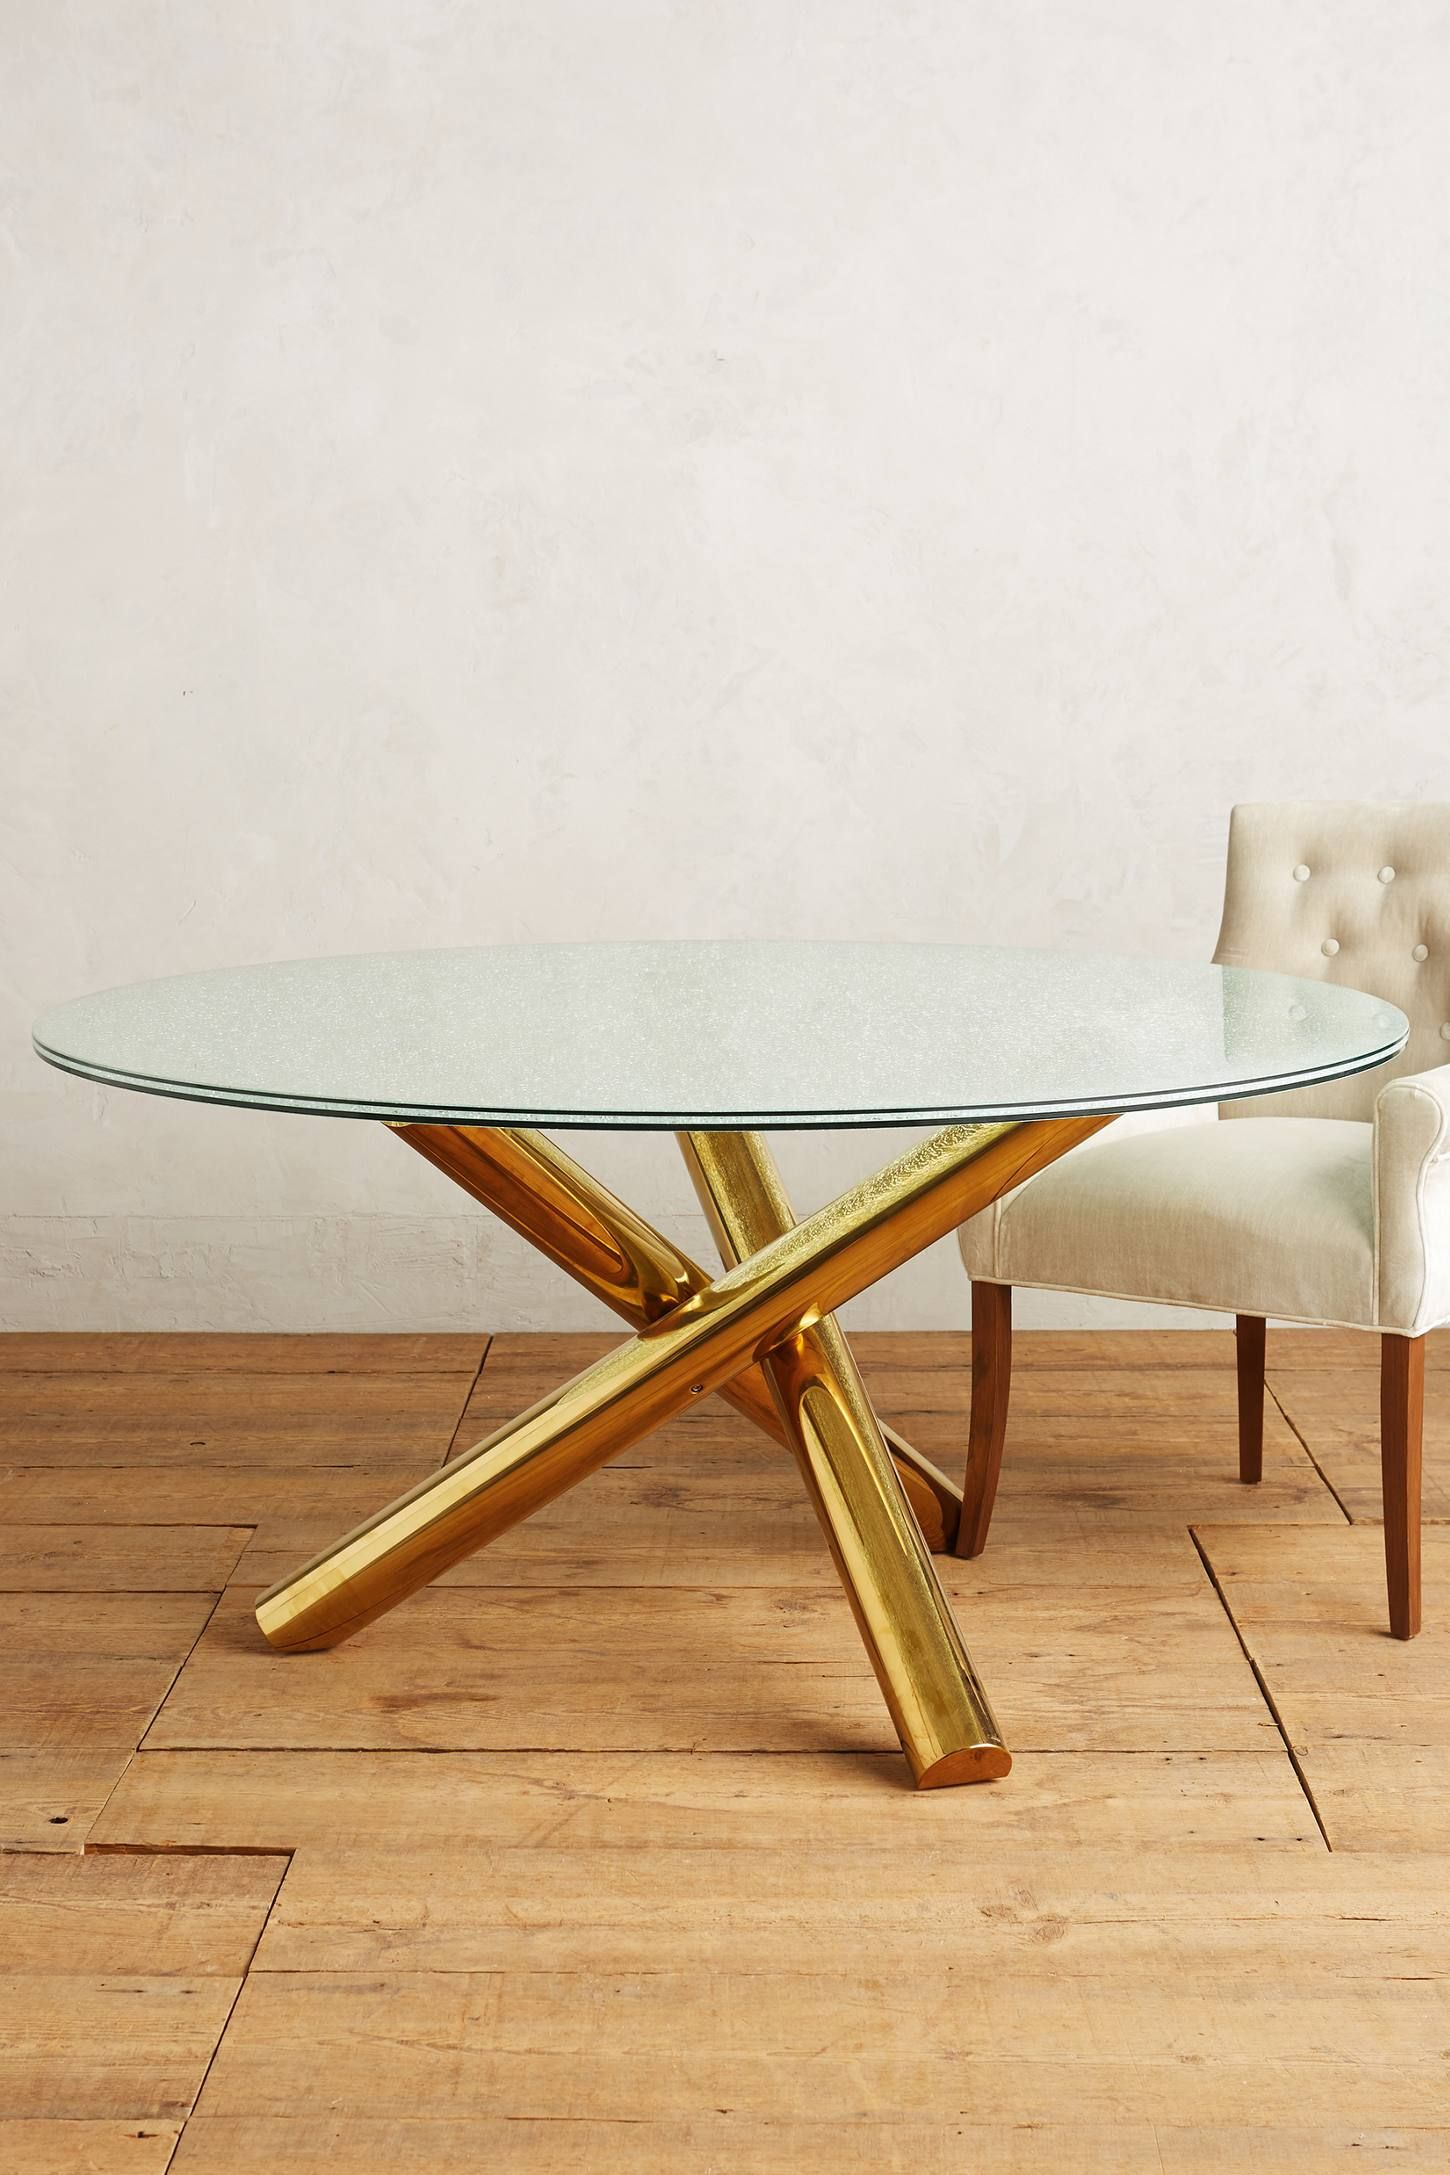 Crackled Glass Dining Table Dining Table Glass Dining Table Oval Glass Dining Table